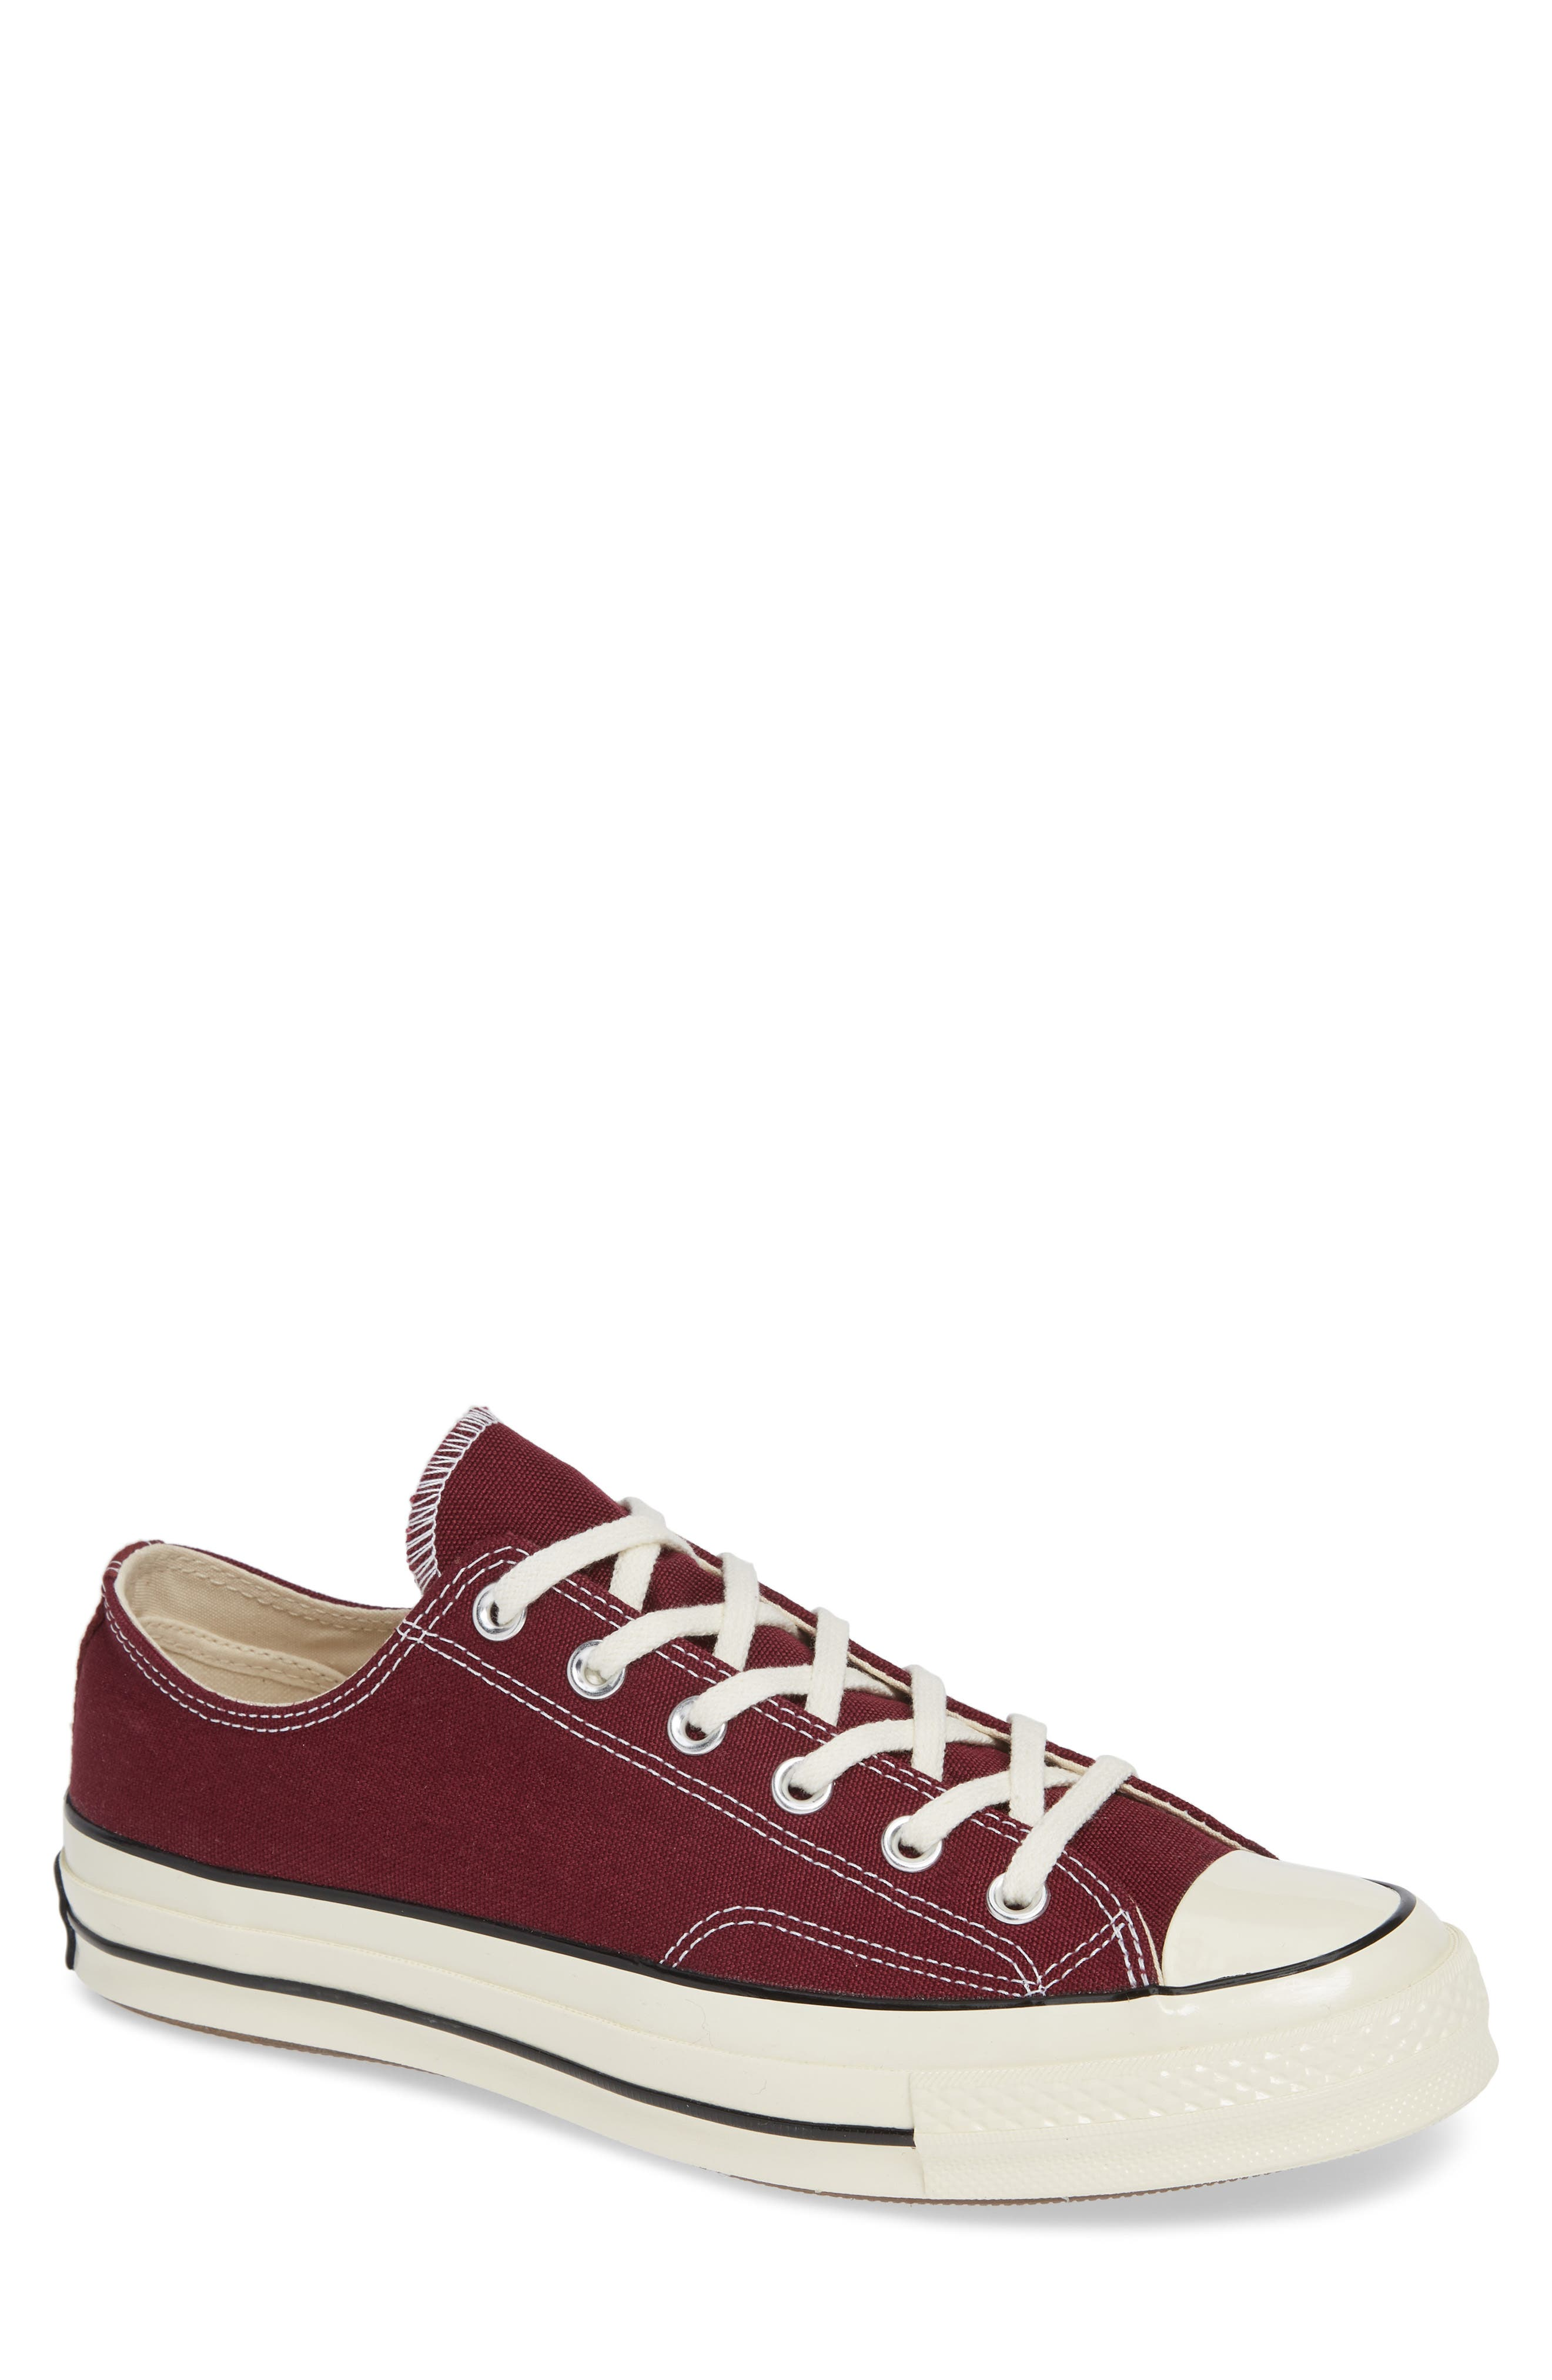 Chuck Taylor<sup>®</sup> All Star<sup>®</sup> 70 Low Top Sneaker,                         Main,                         color, BURGUNDY